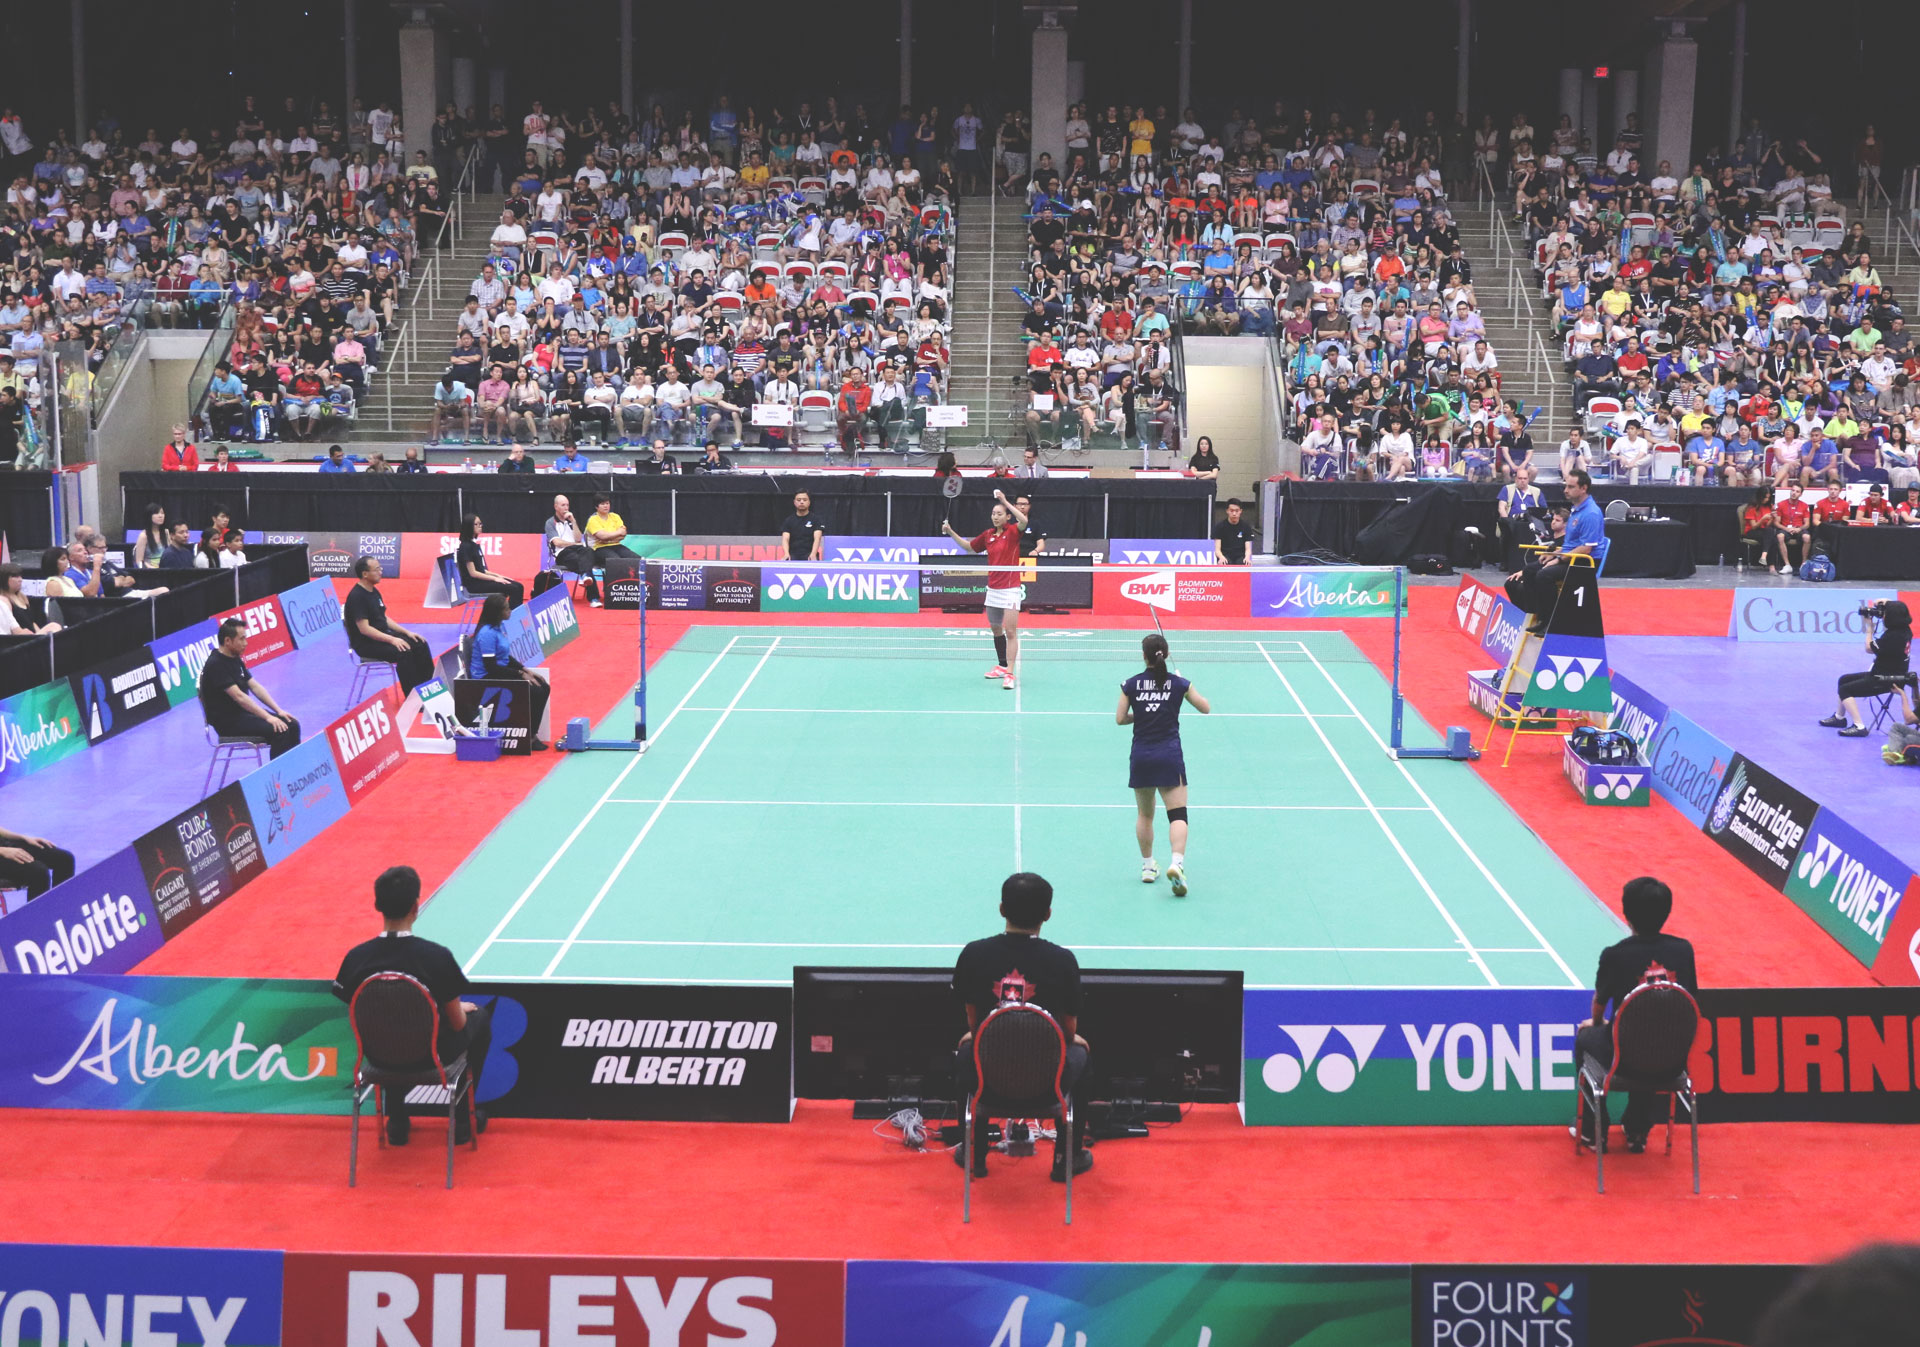 Get a front row seat to the YONEX Canada Open in Calgary.